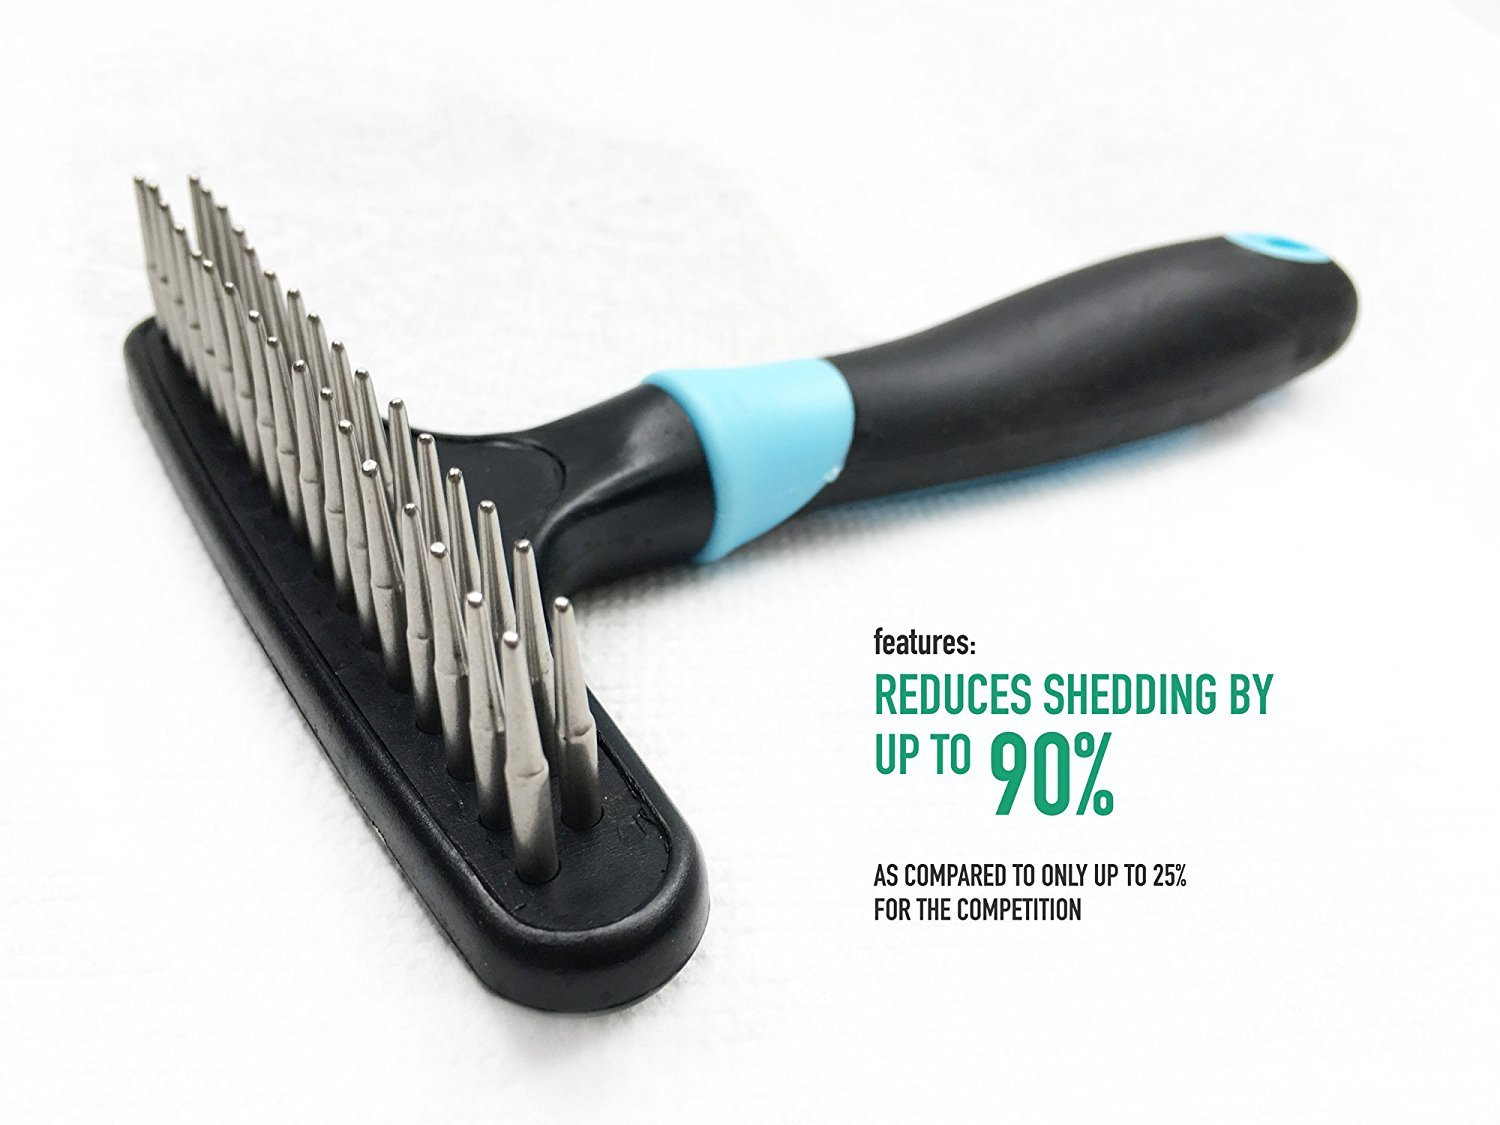 Dog rake deshedding dematting Brush Comb - Undercoat rake for Dogs, Cats, Rabbits, matted, Short or Long Hair Coats - Brush for Shedding, Double Row of Stainless Steel pins - Reduce Shedding by 90% Nomad Co.